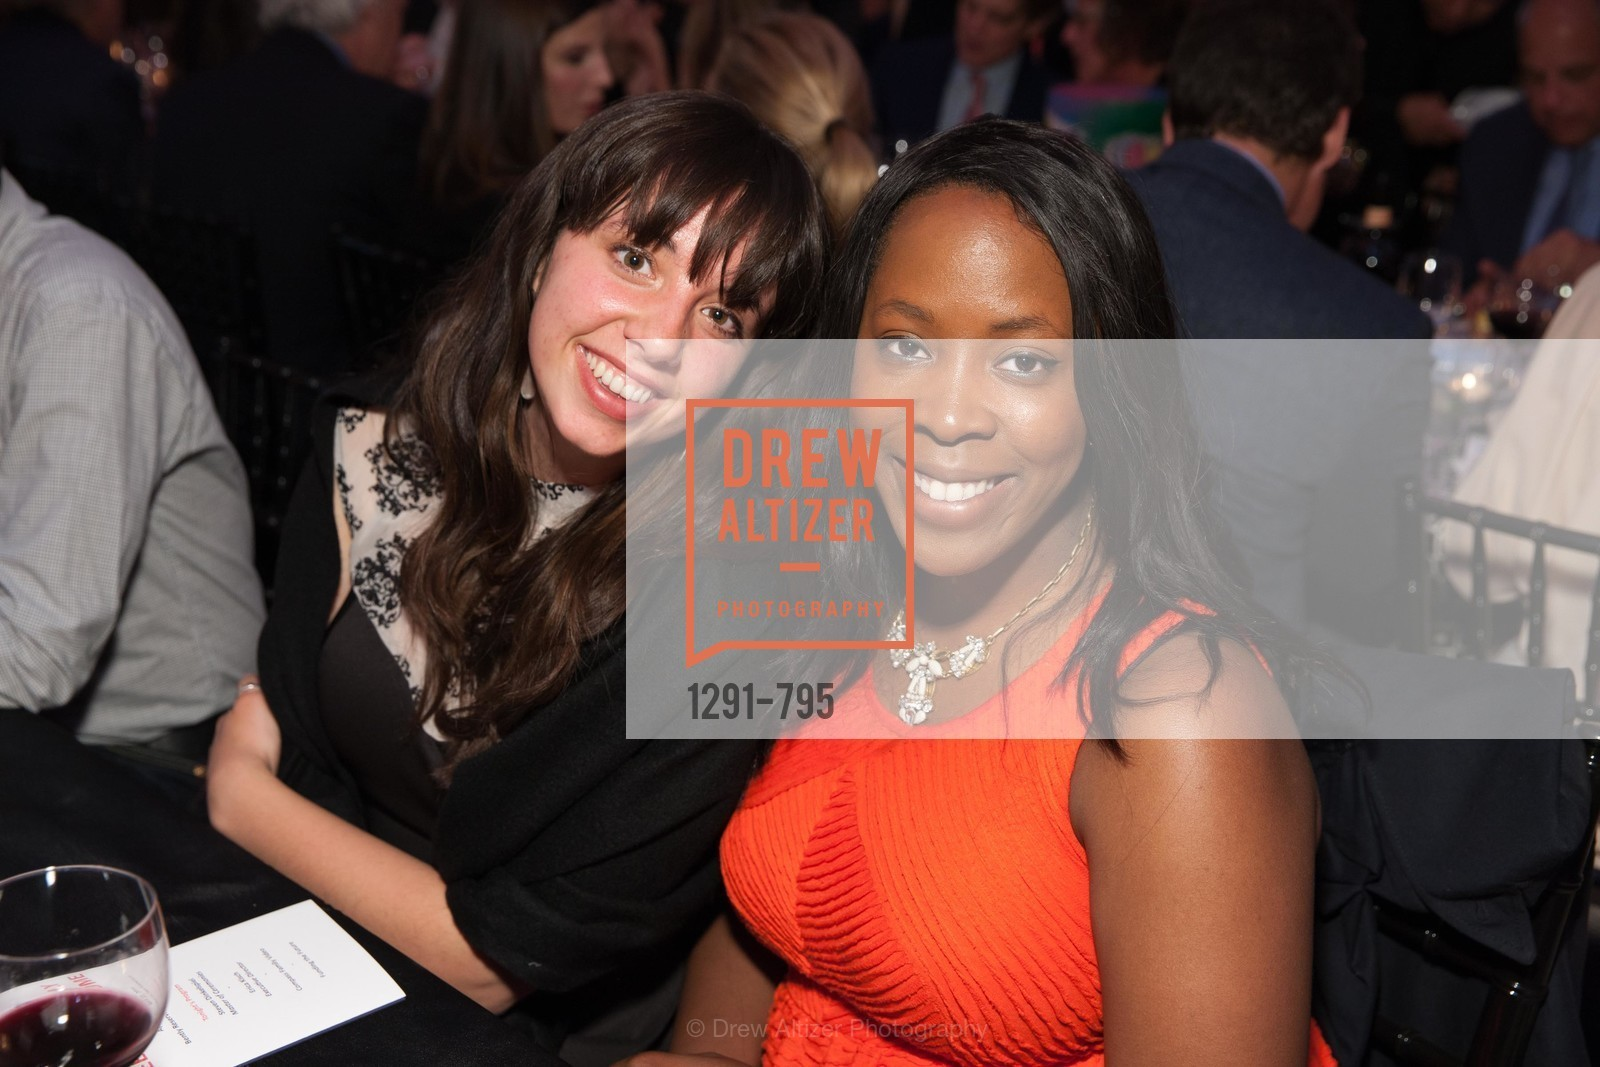 Emily Fredrickson, Jire Baddmosi, COMPASS FAMILY SERVICES Annual Spring Benefit:  Every Family Needs A Home, US, April 22nd, 2015,Drew Altizer, Drew Altizer Photography, full-service agency, private events, San Francisco photographer, photographer california